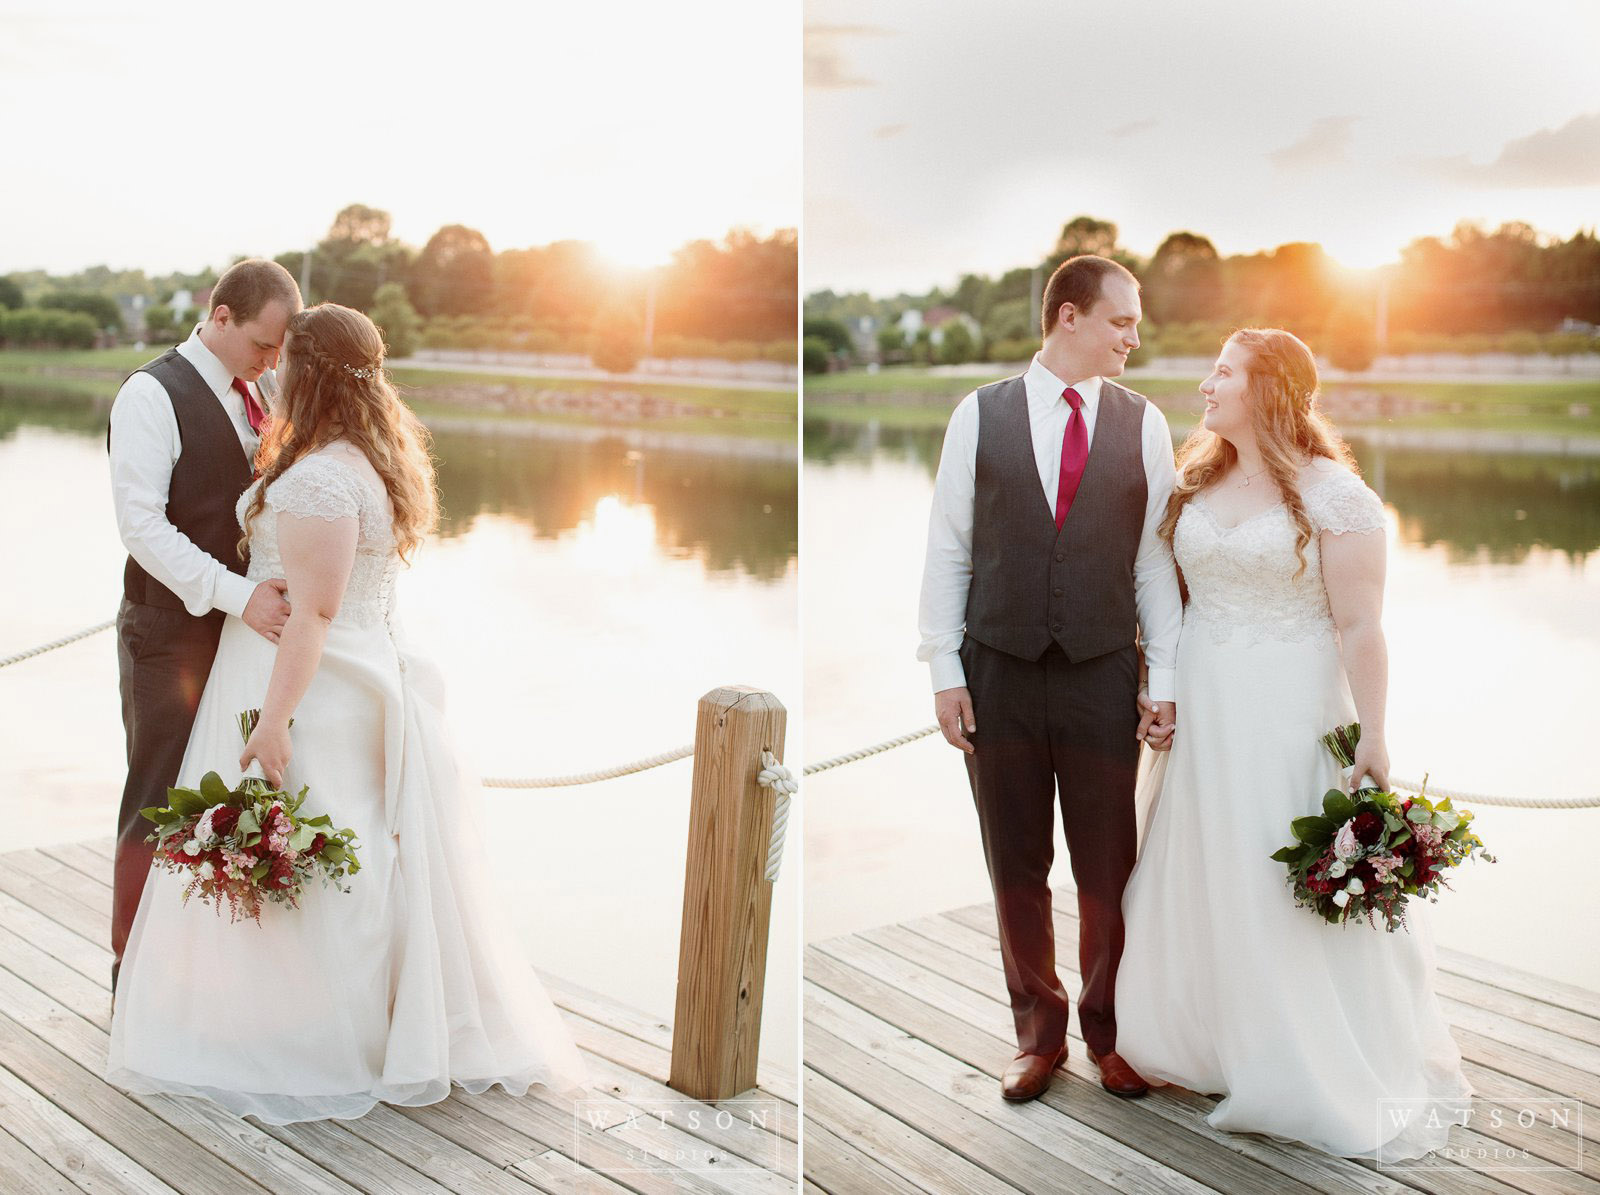 Hunter Valley Farm sunset wedding photos